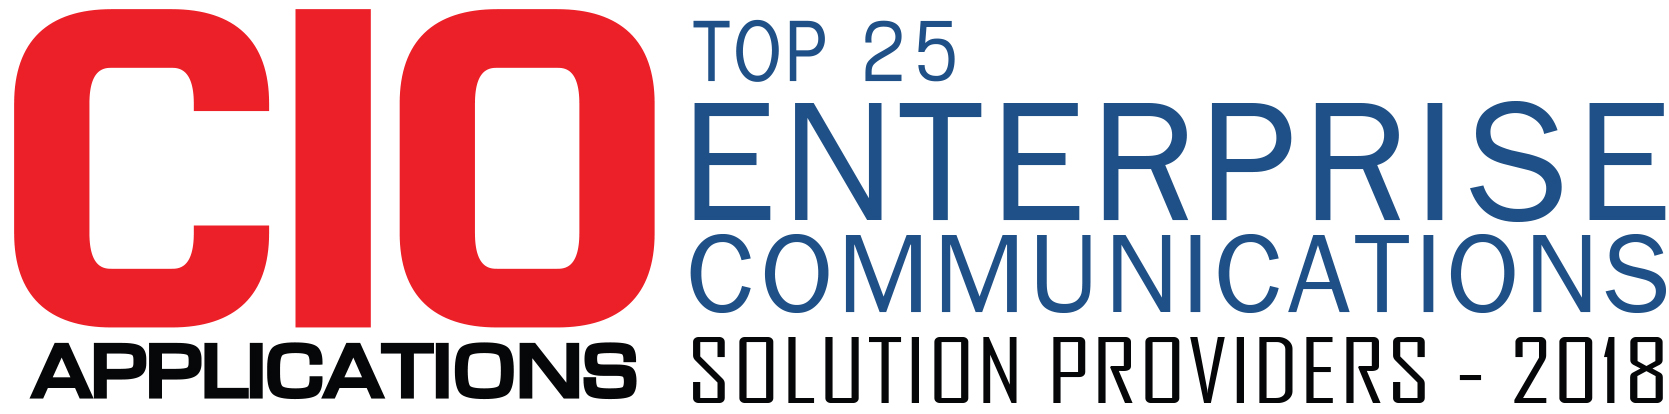 Top 25 Companies Providing Enterprise Communications Solution  - 2018